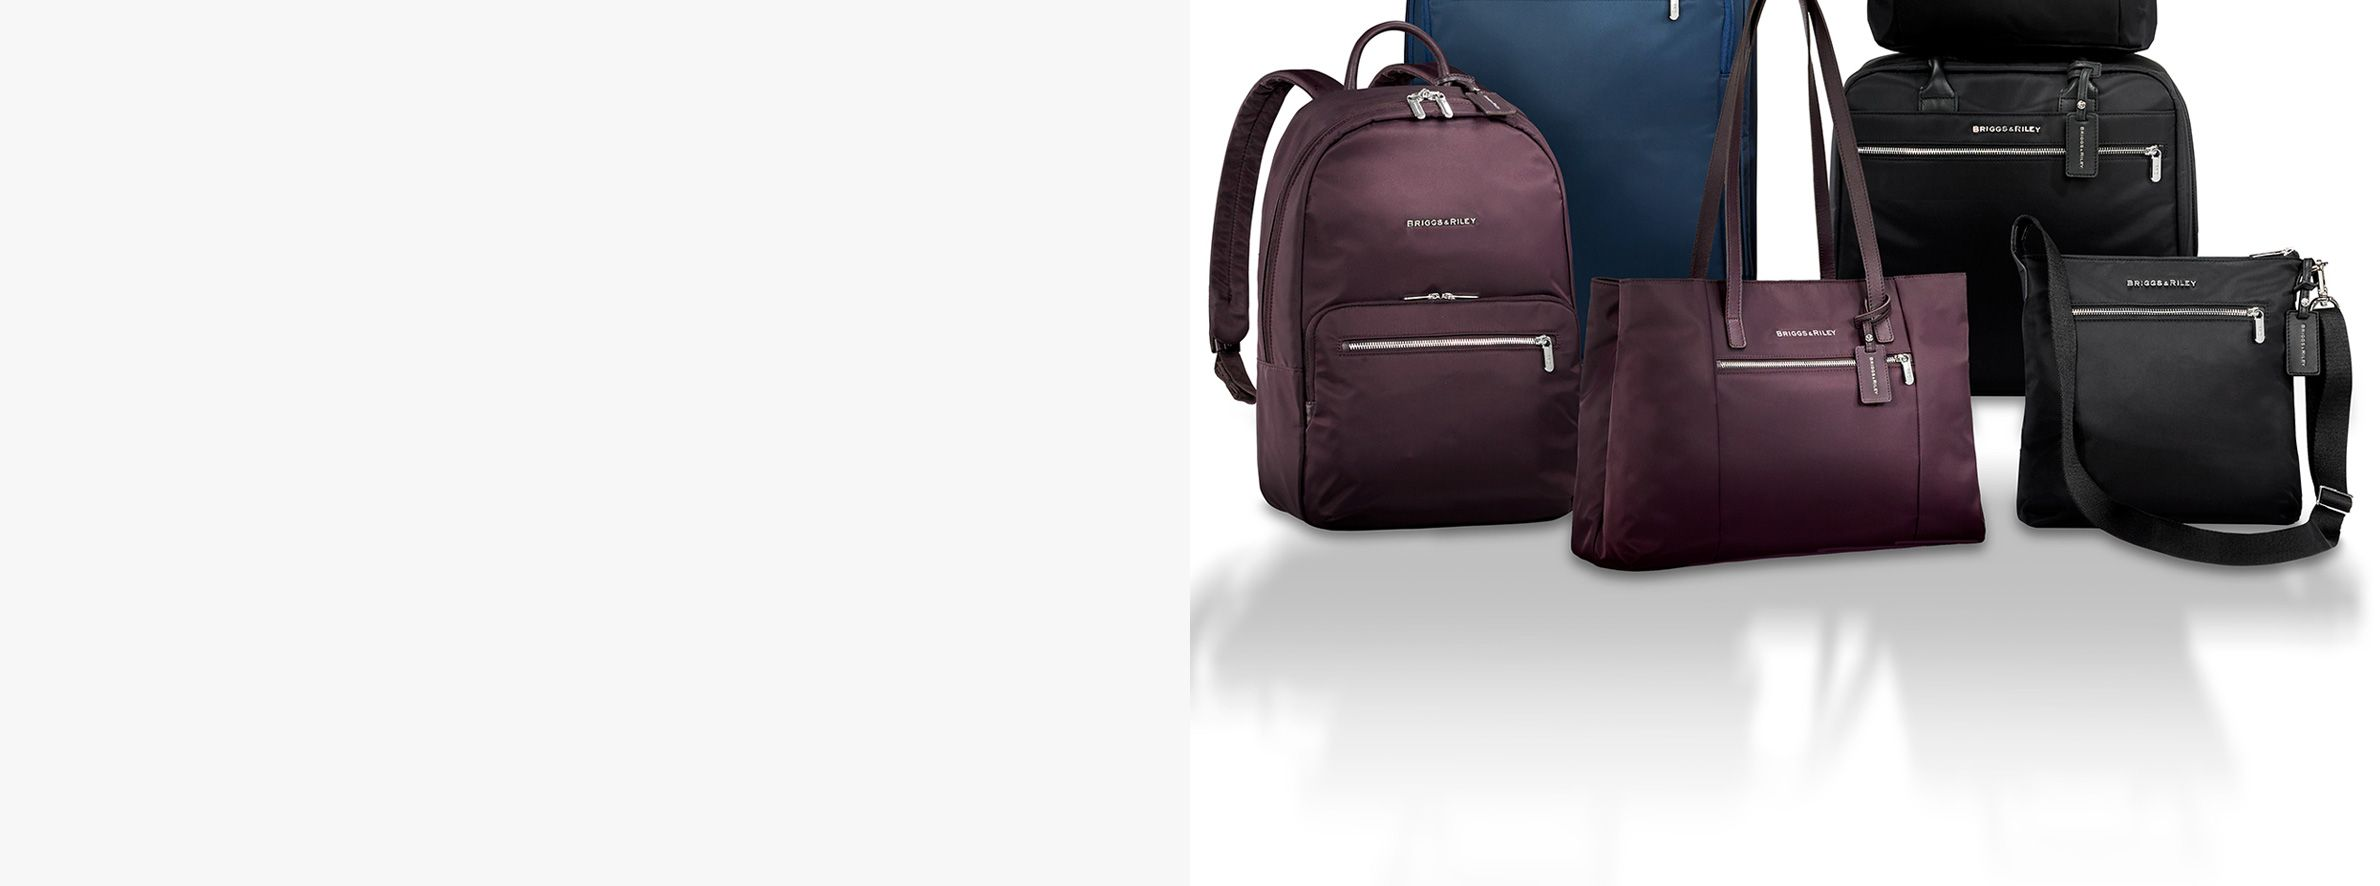 960e086009b3 Backpacks | John Lewis & Partners